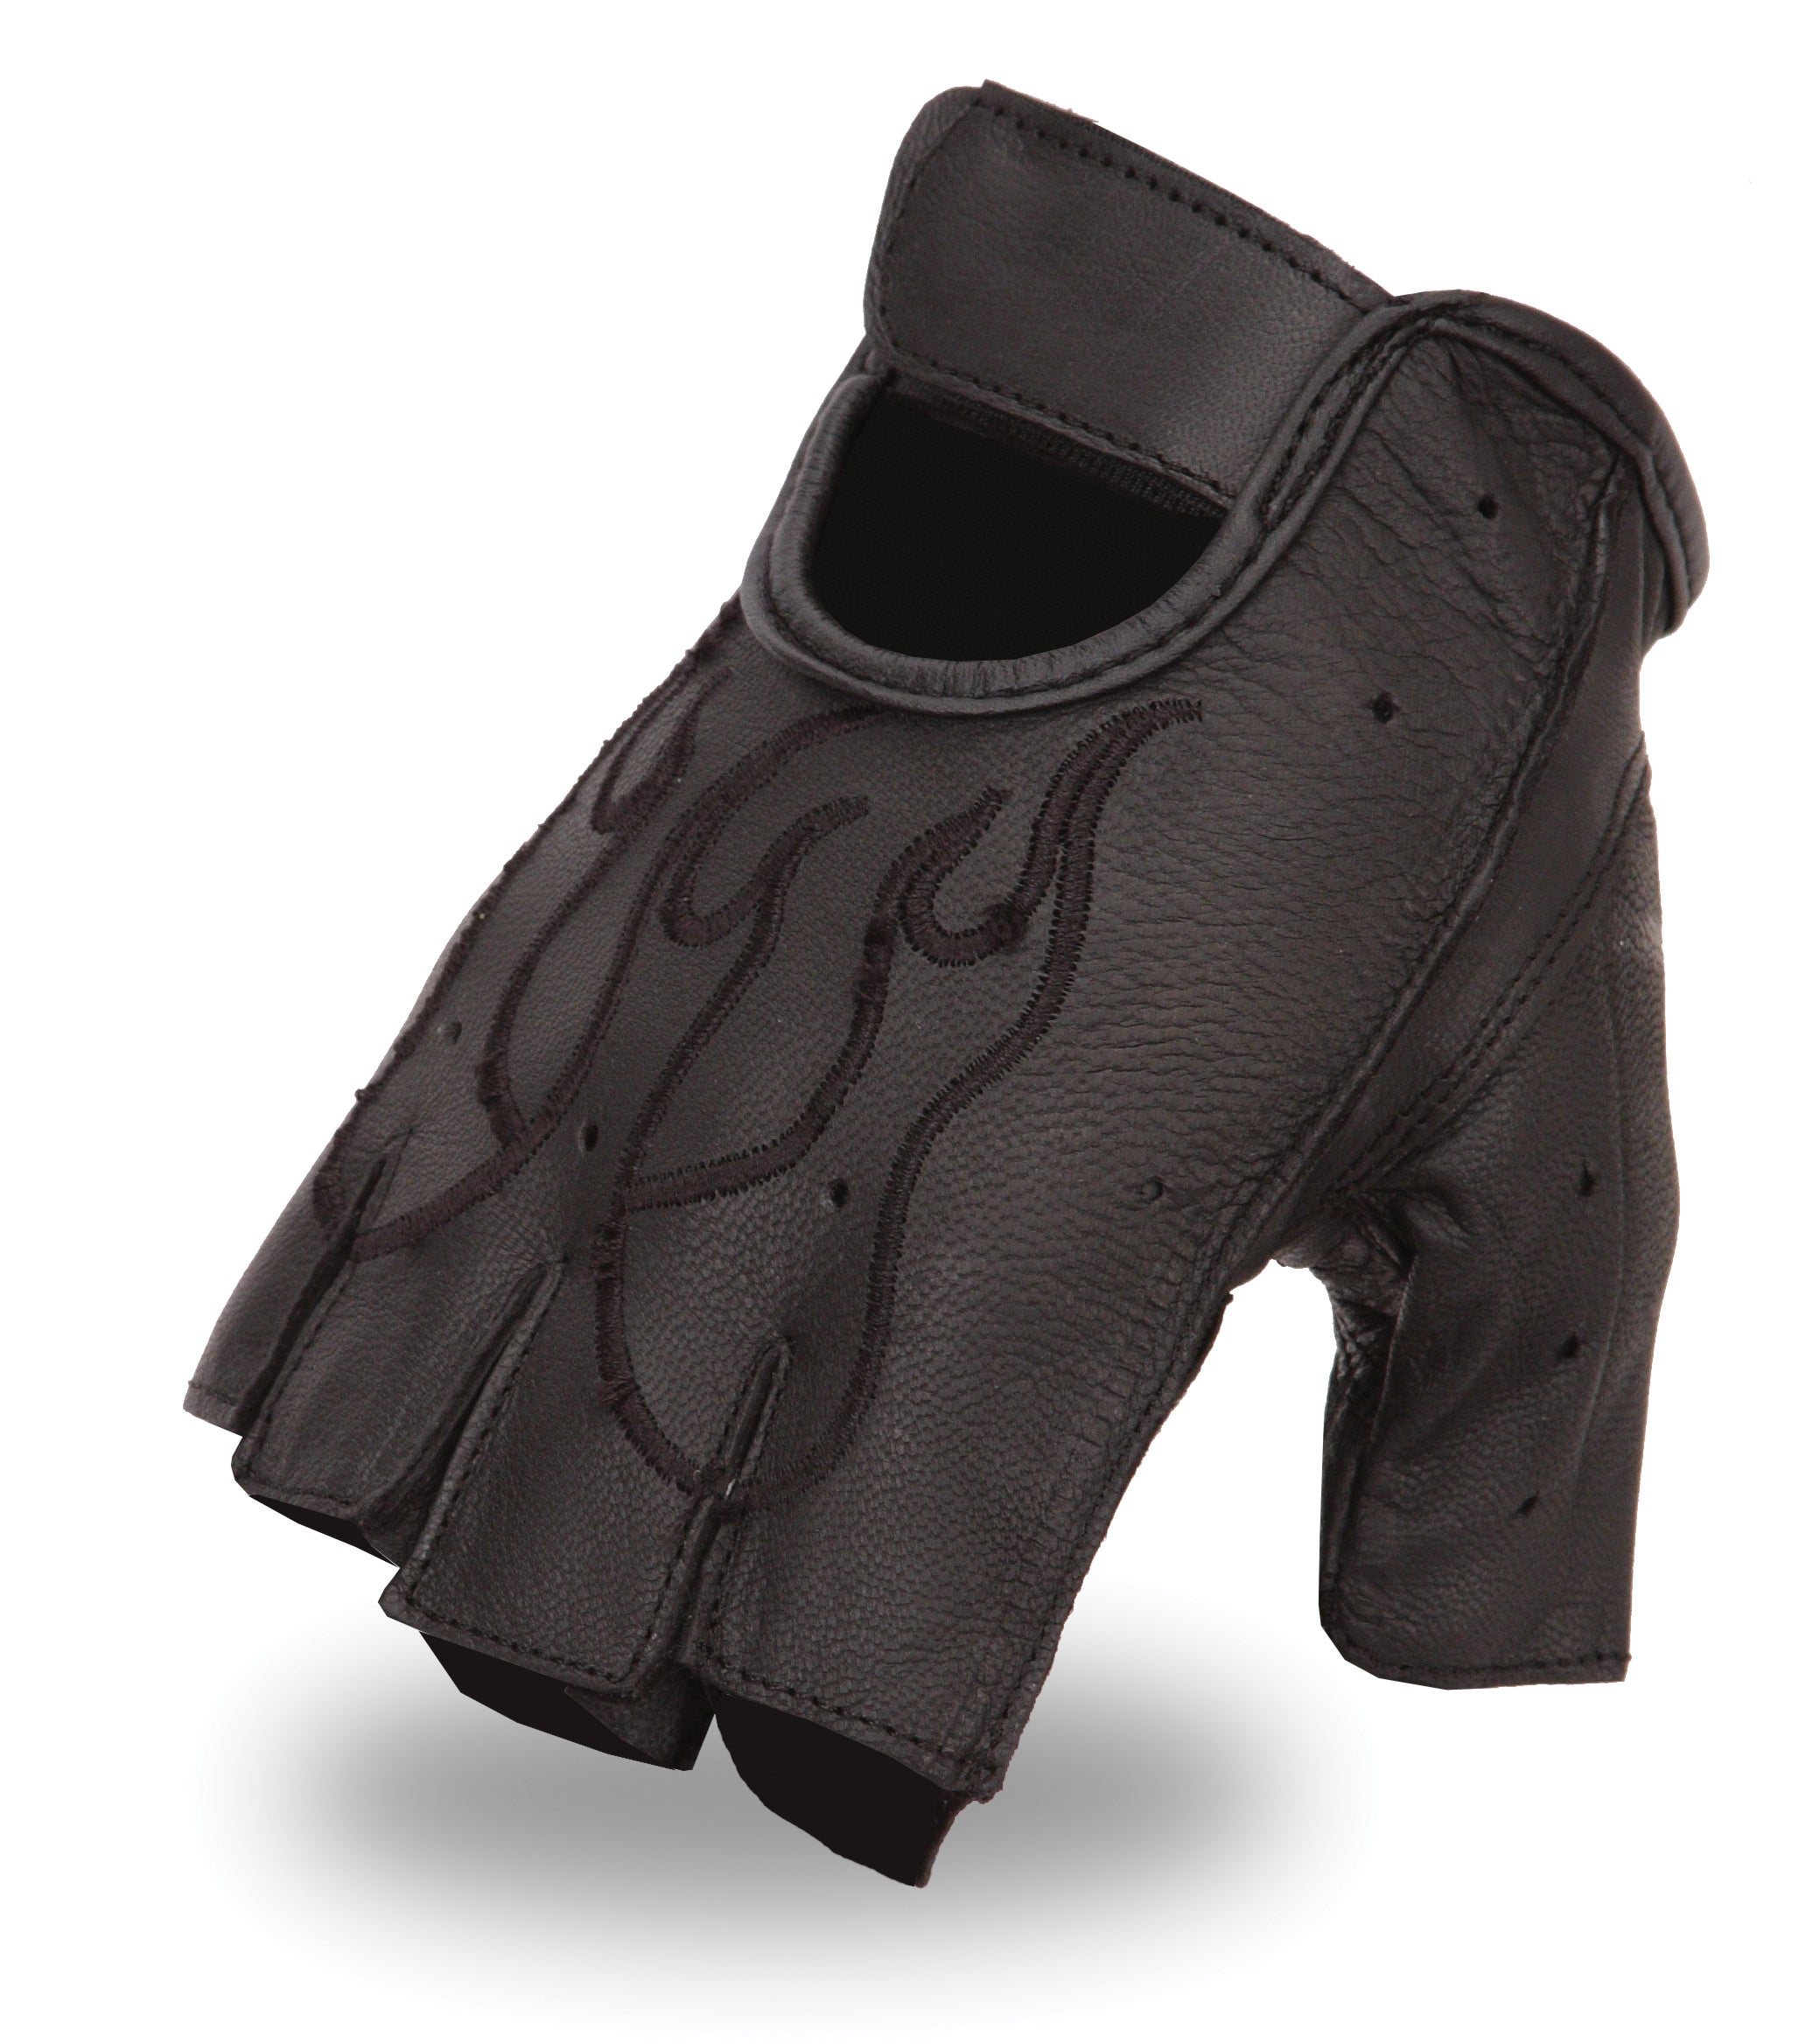 Fingerless leather gloves mens accessories - Image Is Loading First Classics Men 039 S Embroidered Fingerless Leather